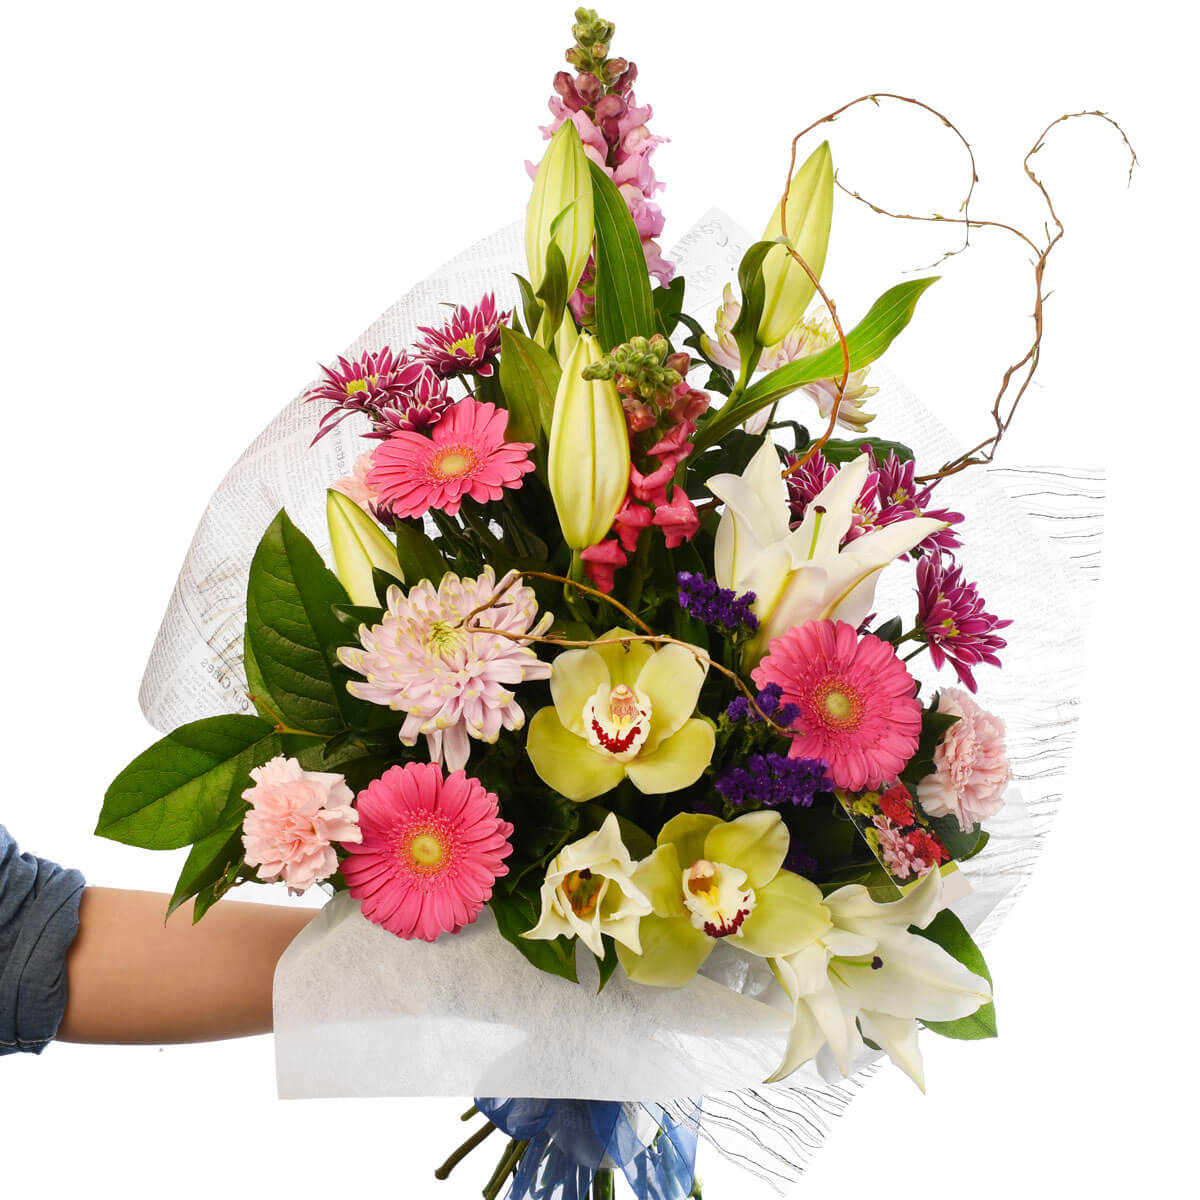 Happy Birthday Flower Bouquet Delivery In Vancouver From Adele Rae Florist